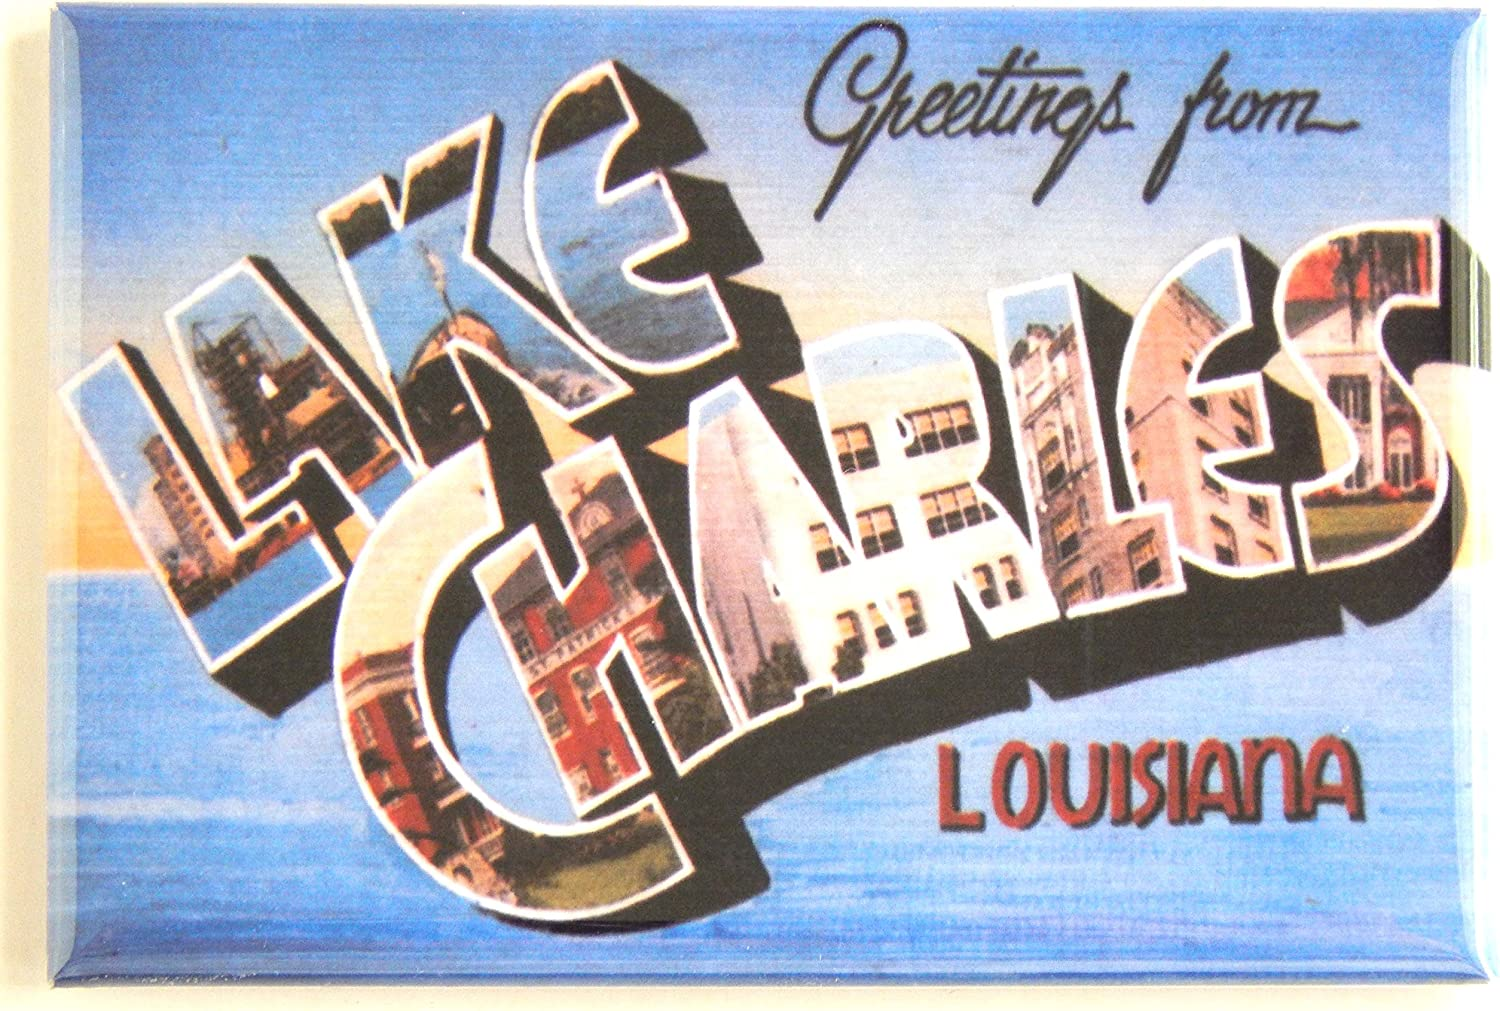 Greetings From Lake Charles Louisiana Fridge Magnet (1.75 x 2.75 inches)